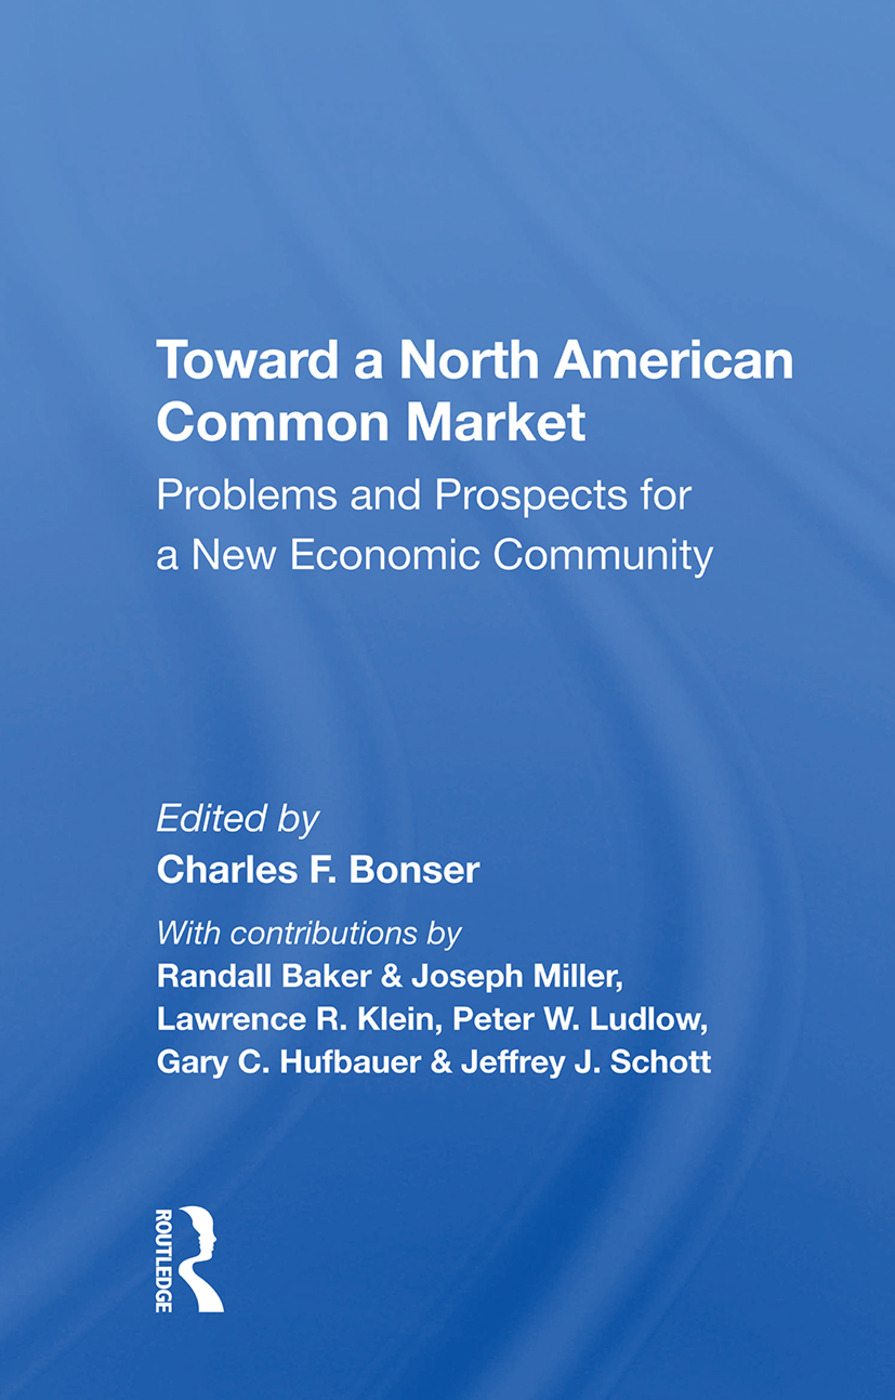 Toward A North American Common Market: Problems And Prospects For A New Economic Community book cover